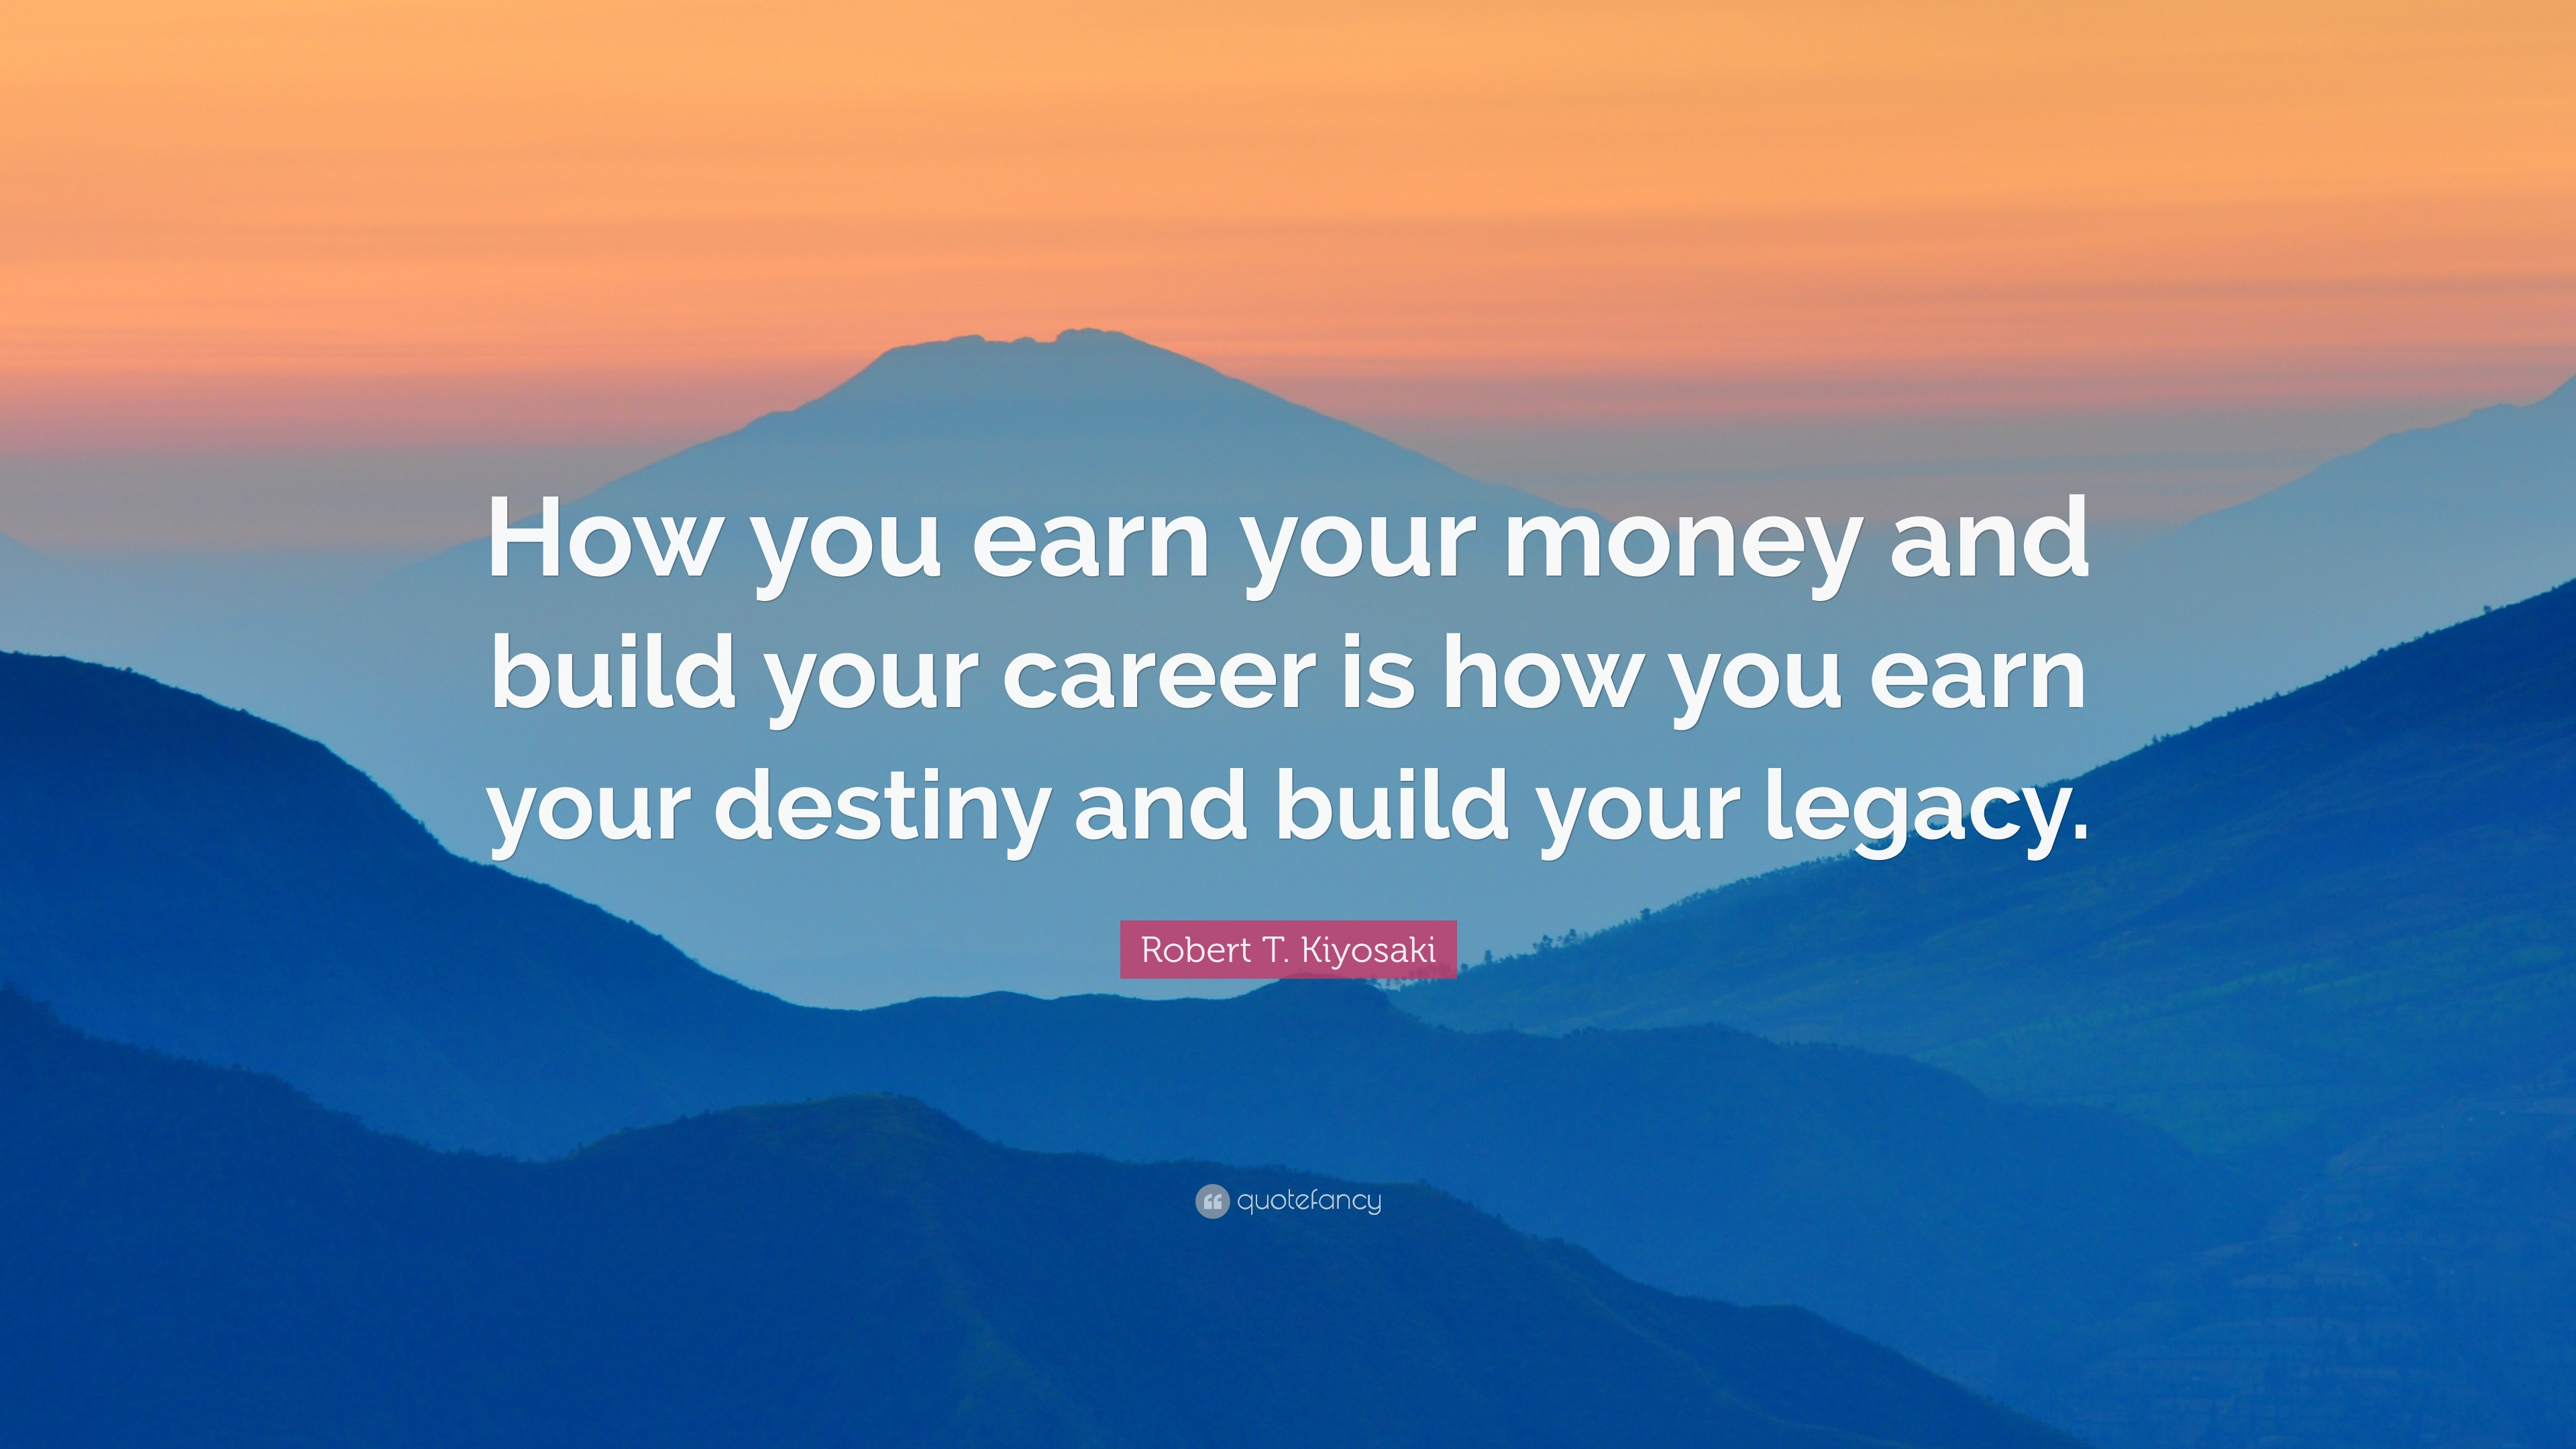 Robert T Kiyosaki Quote How You Earn Your Money And Build Your